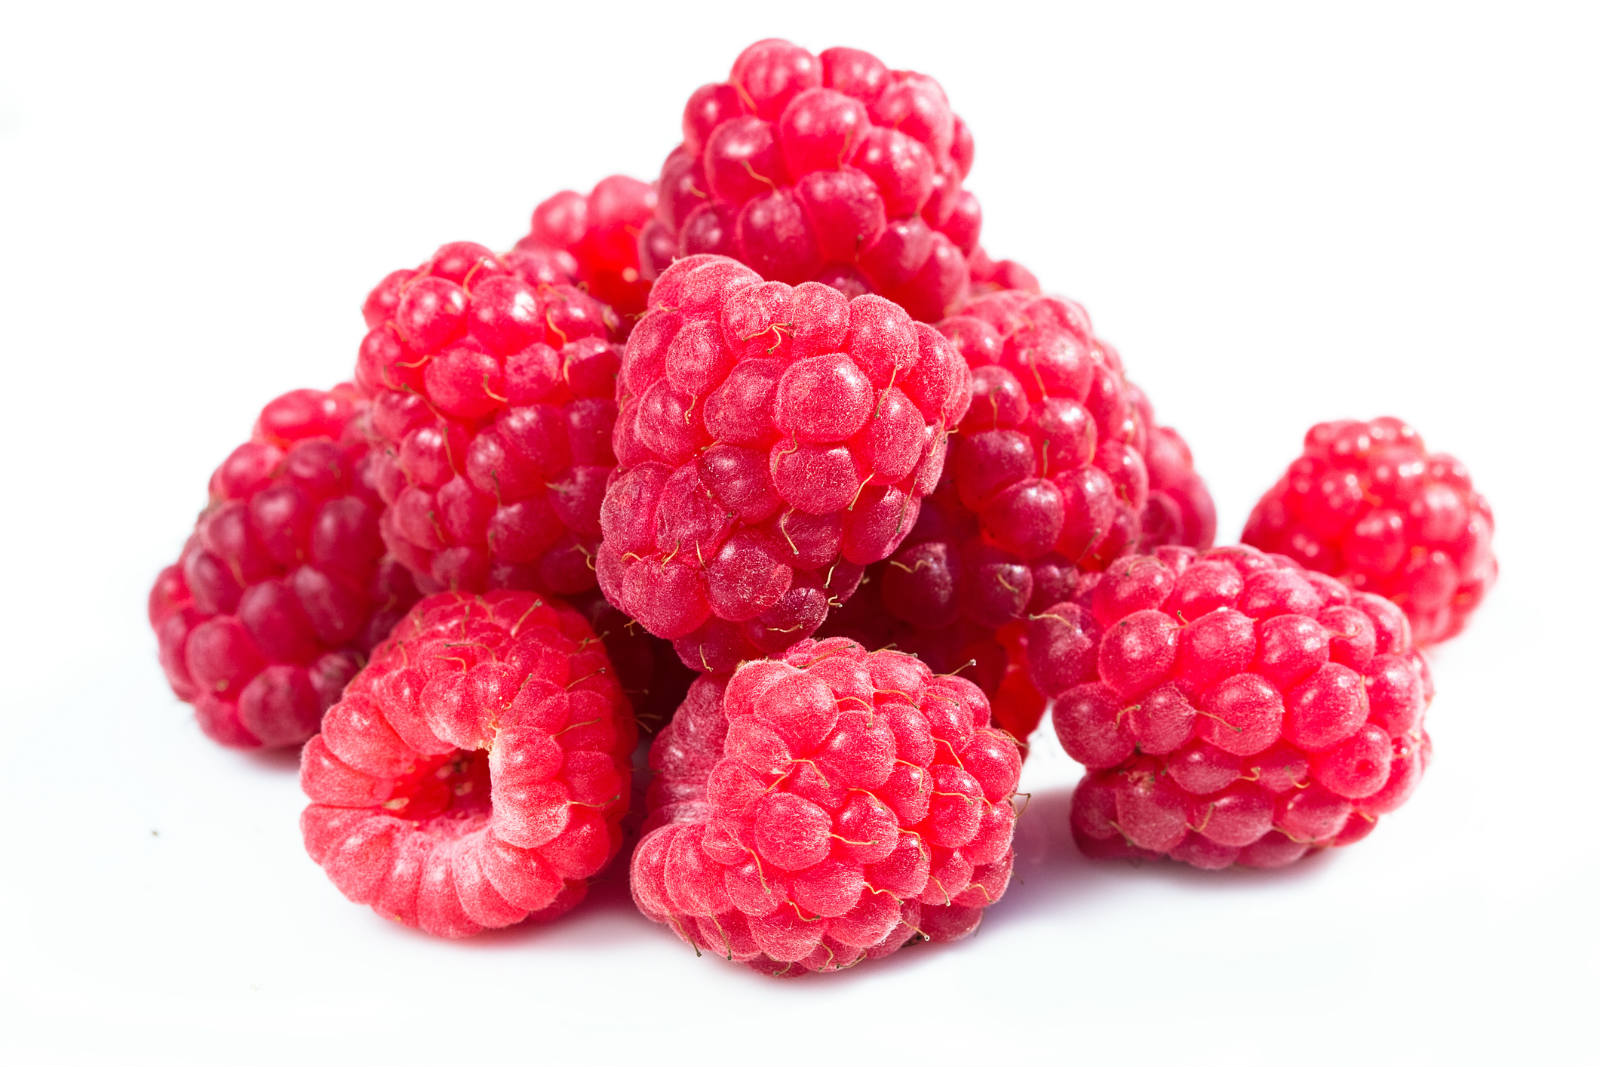 Sweet Raspberries in a Pile 3017.41 Kb